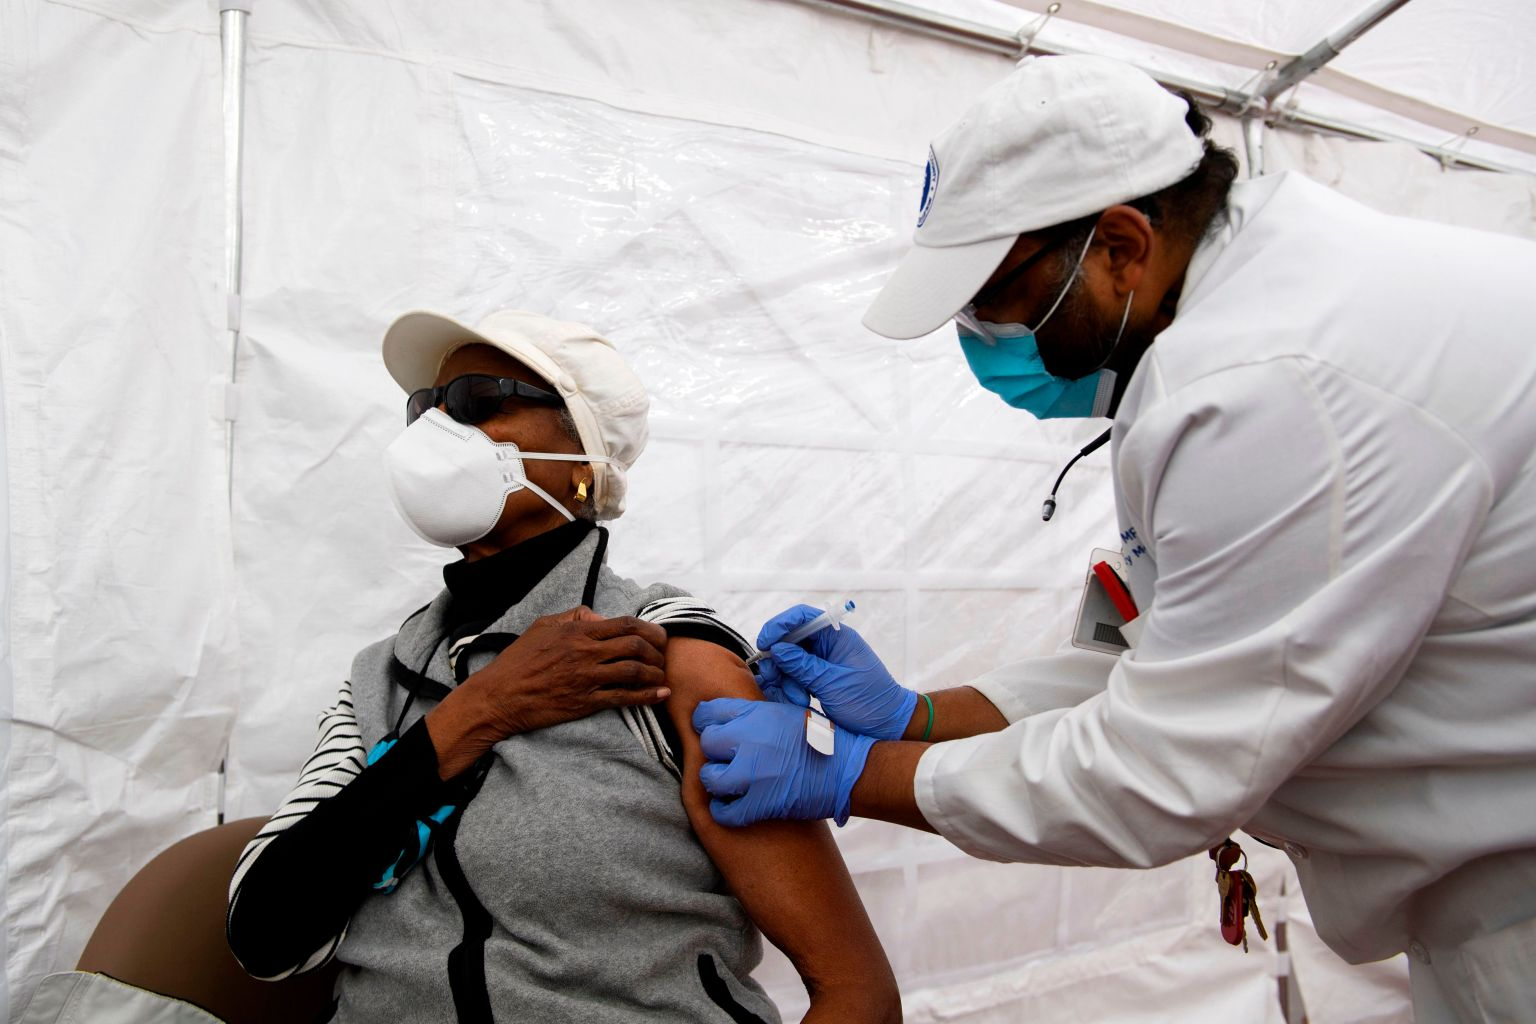 As Vaccine Rollout Expands, Black Americans Still Left Behind 1/30/21